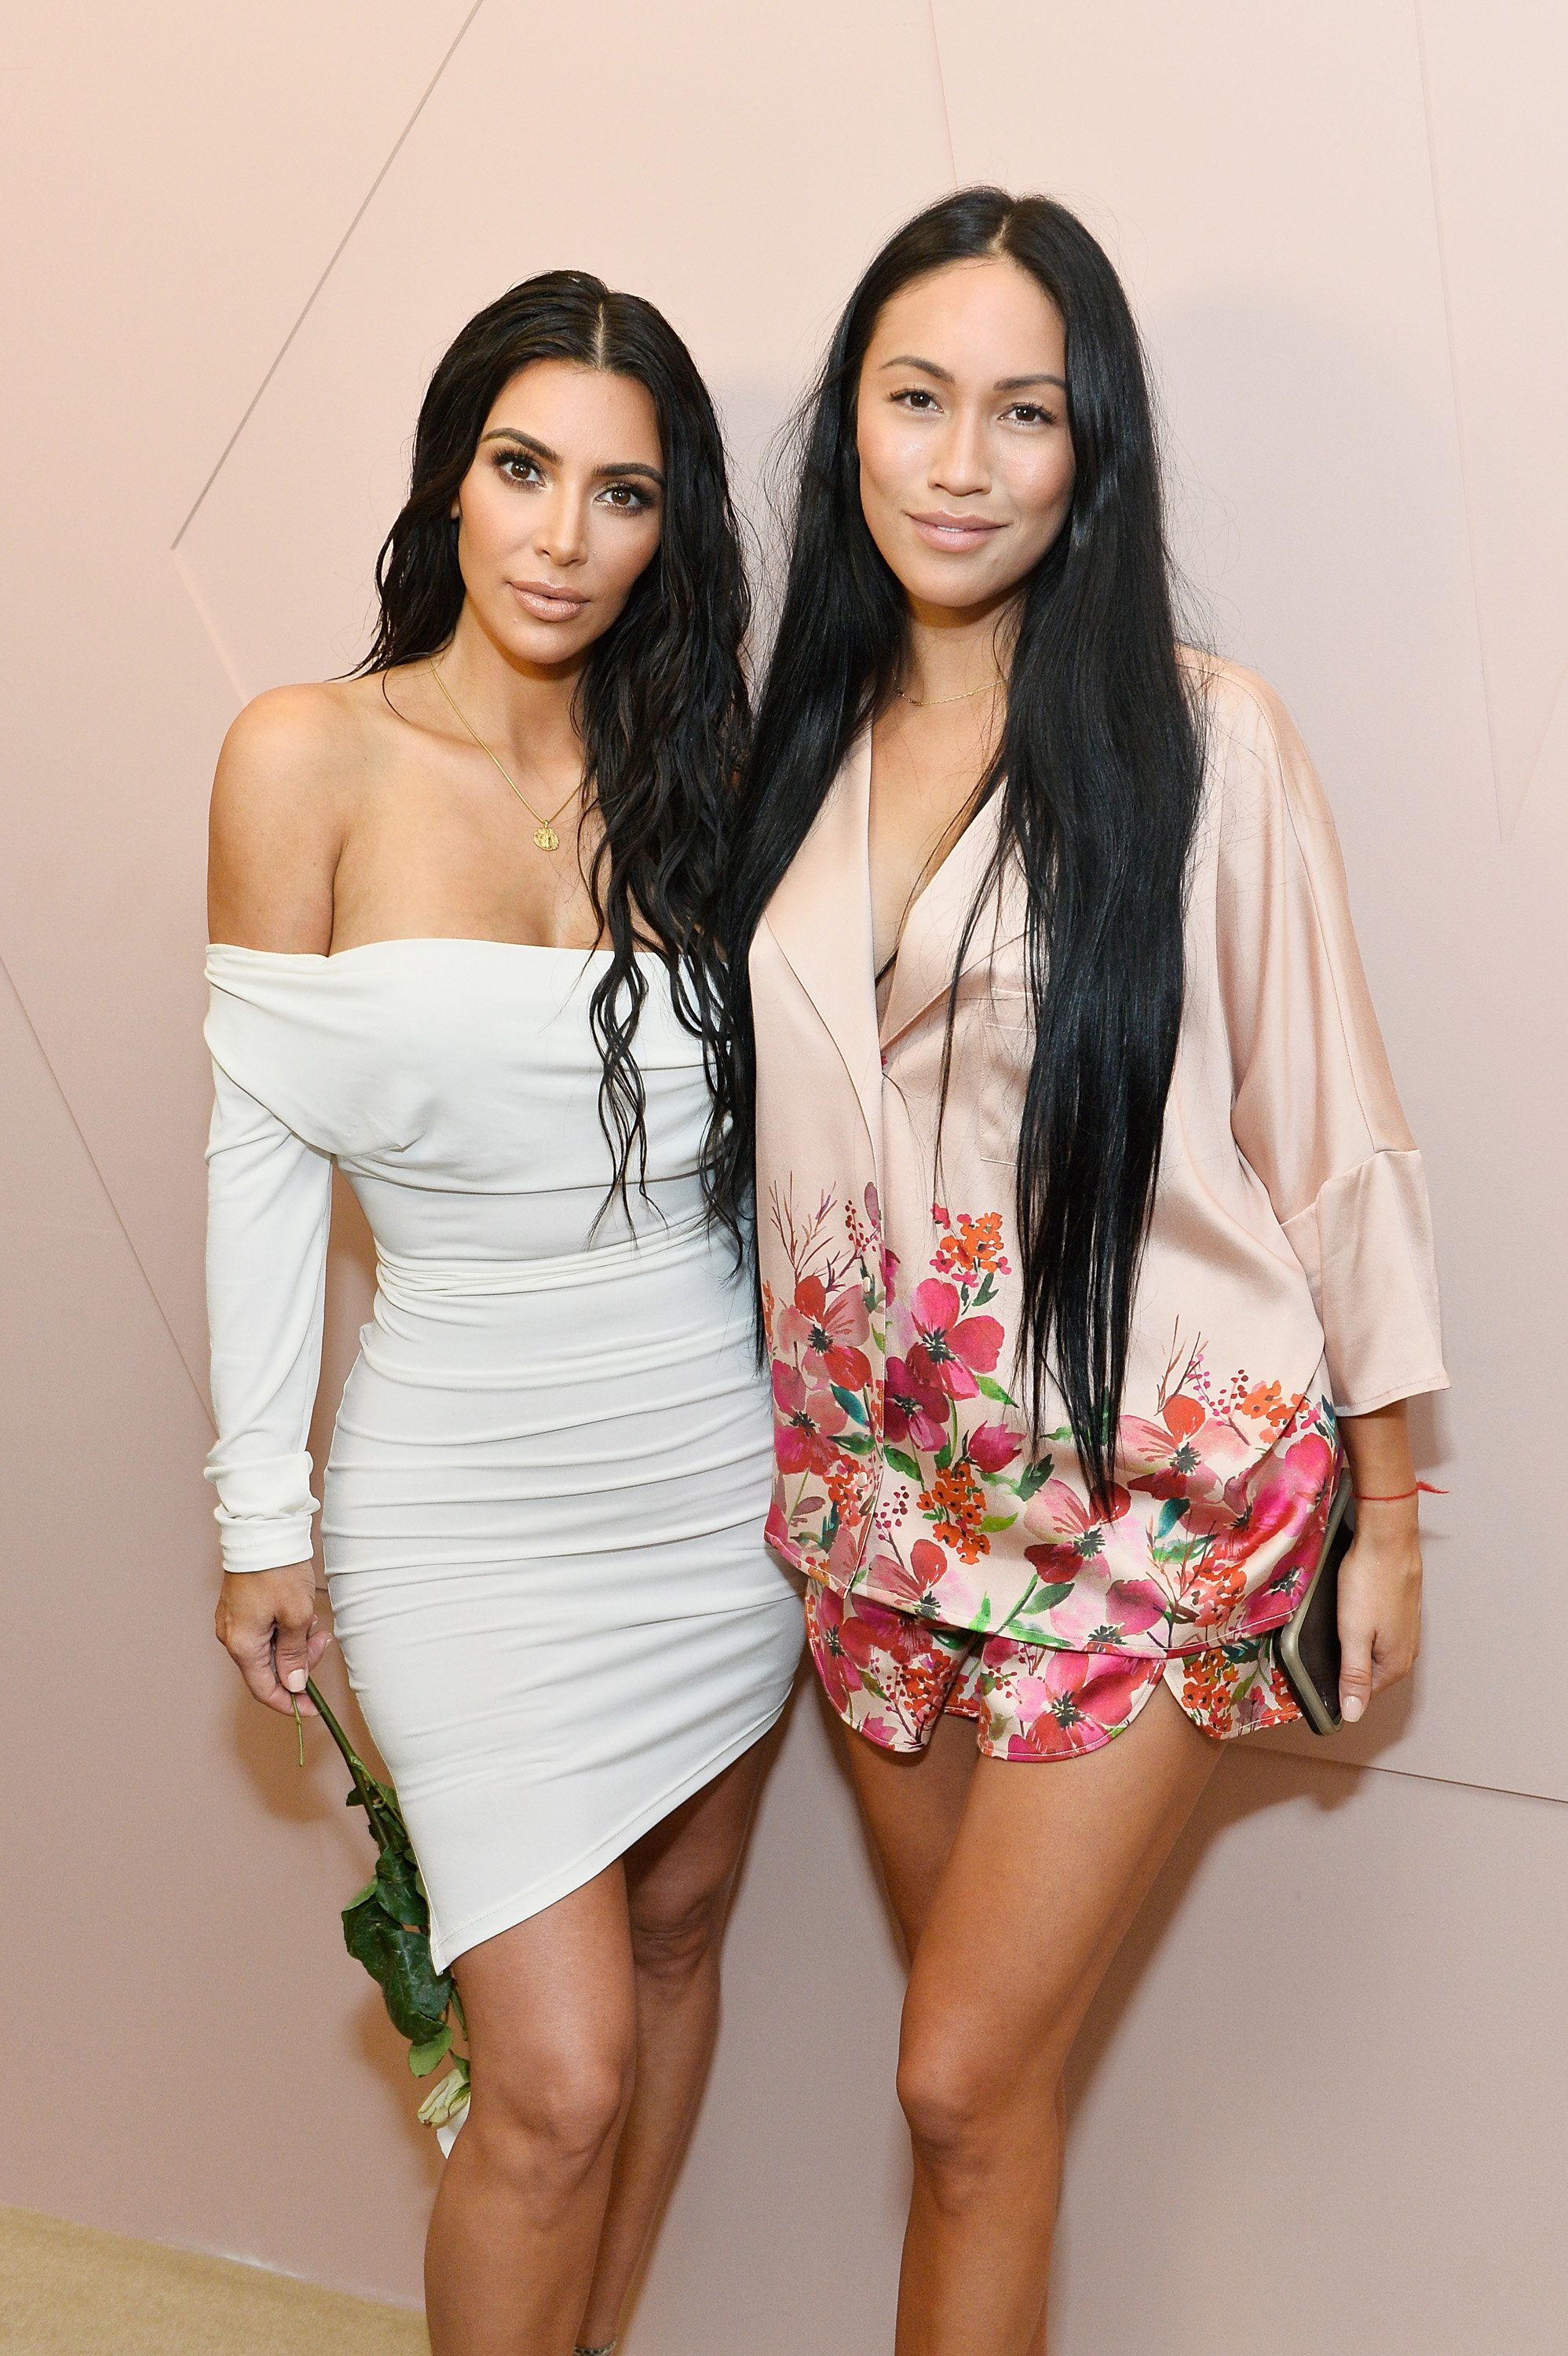 LOS ANGELES, CA - JUNE 20:  Kim Kardashian West and Stephanie Sheppard celebrate The Launch Of KKW Beauty on June 20, 2017 in Los Angeles, California.  (Photo by Stefanie Keenan/Getty Images for Full Picture)